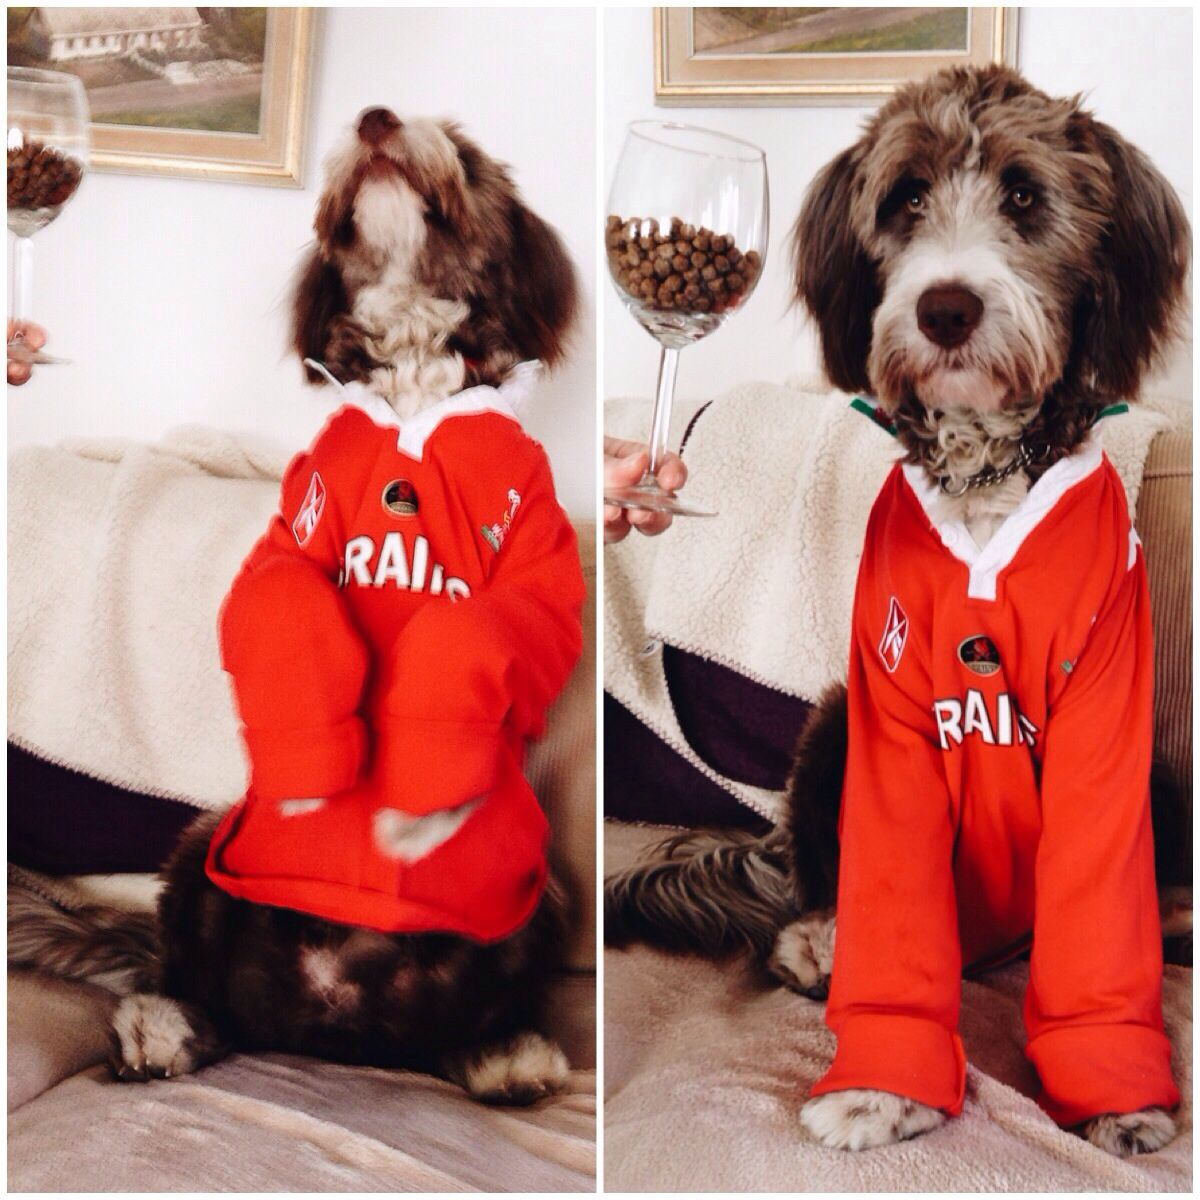 A Welsh supporter of rugby